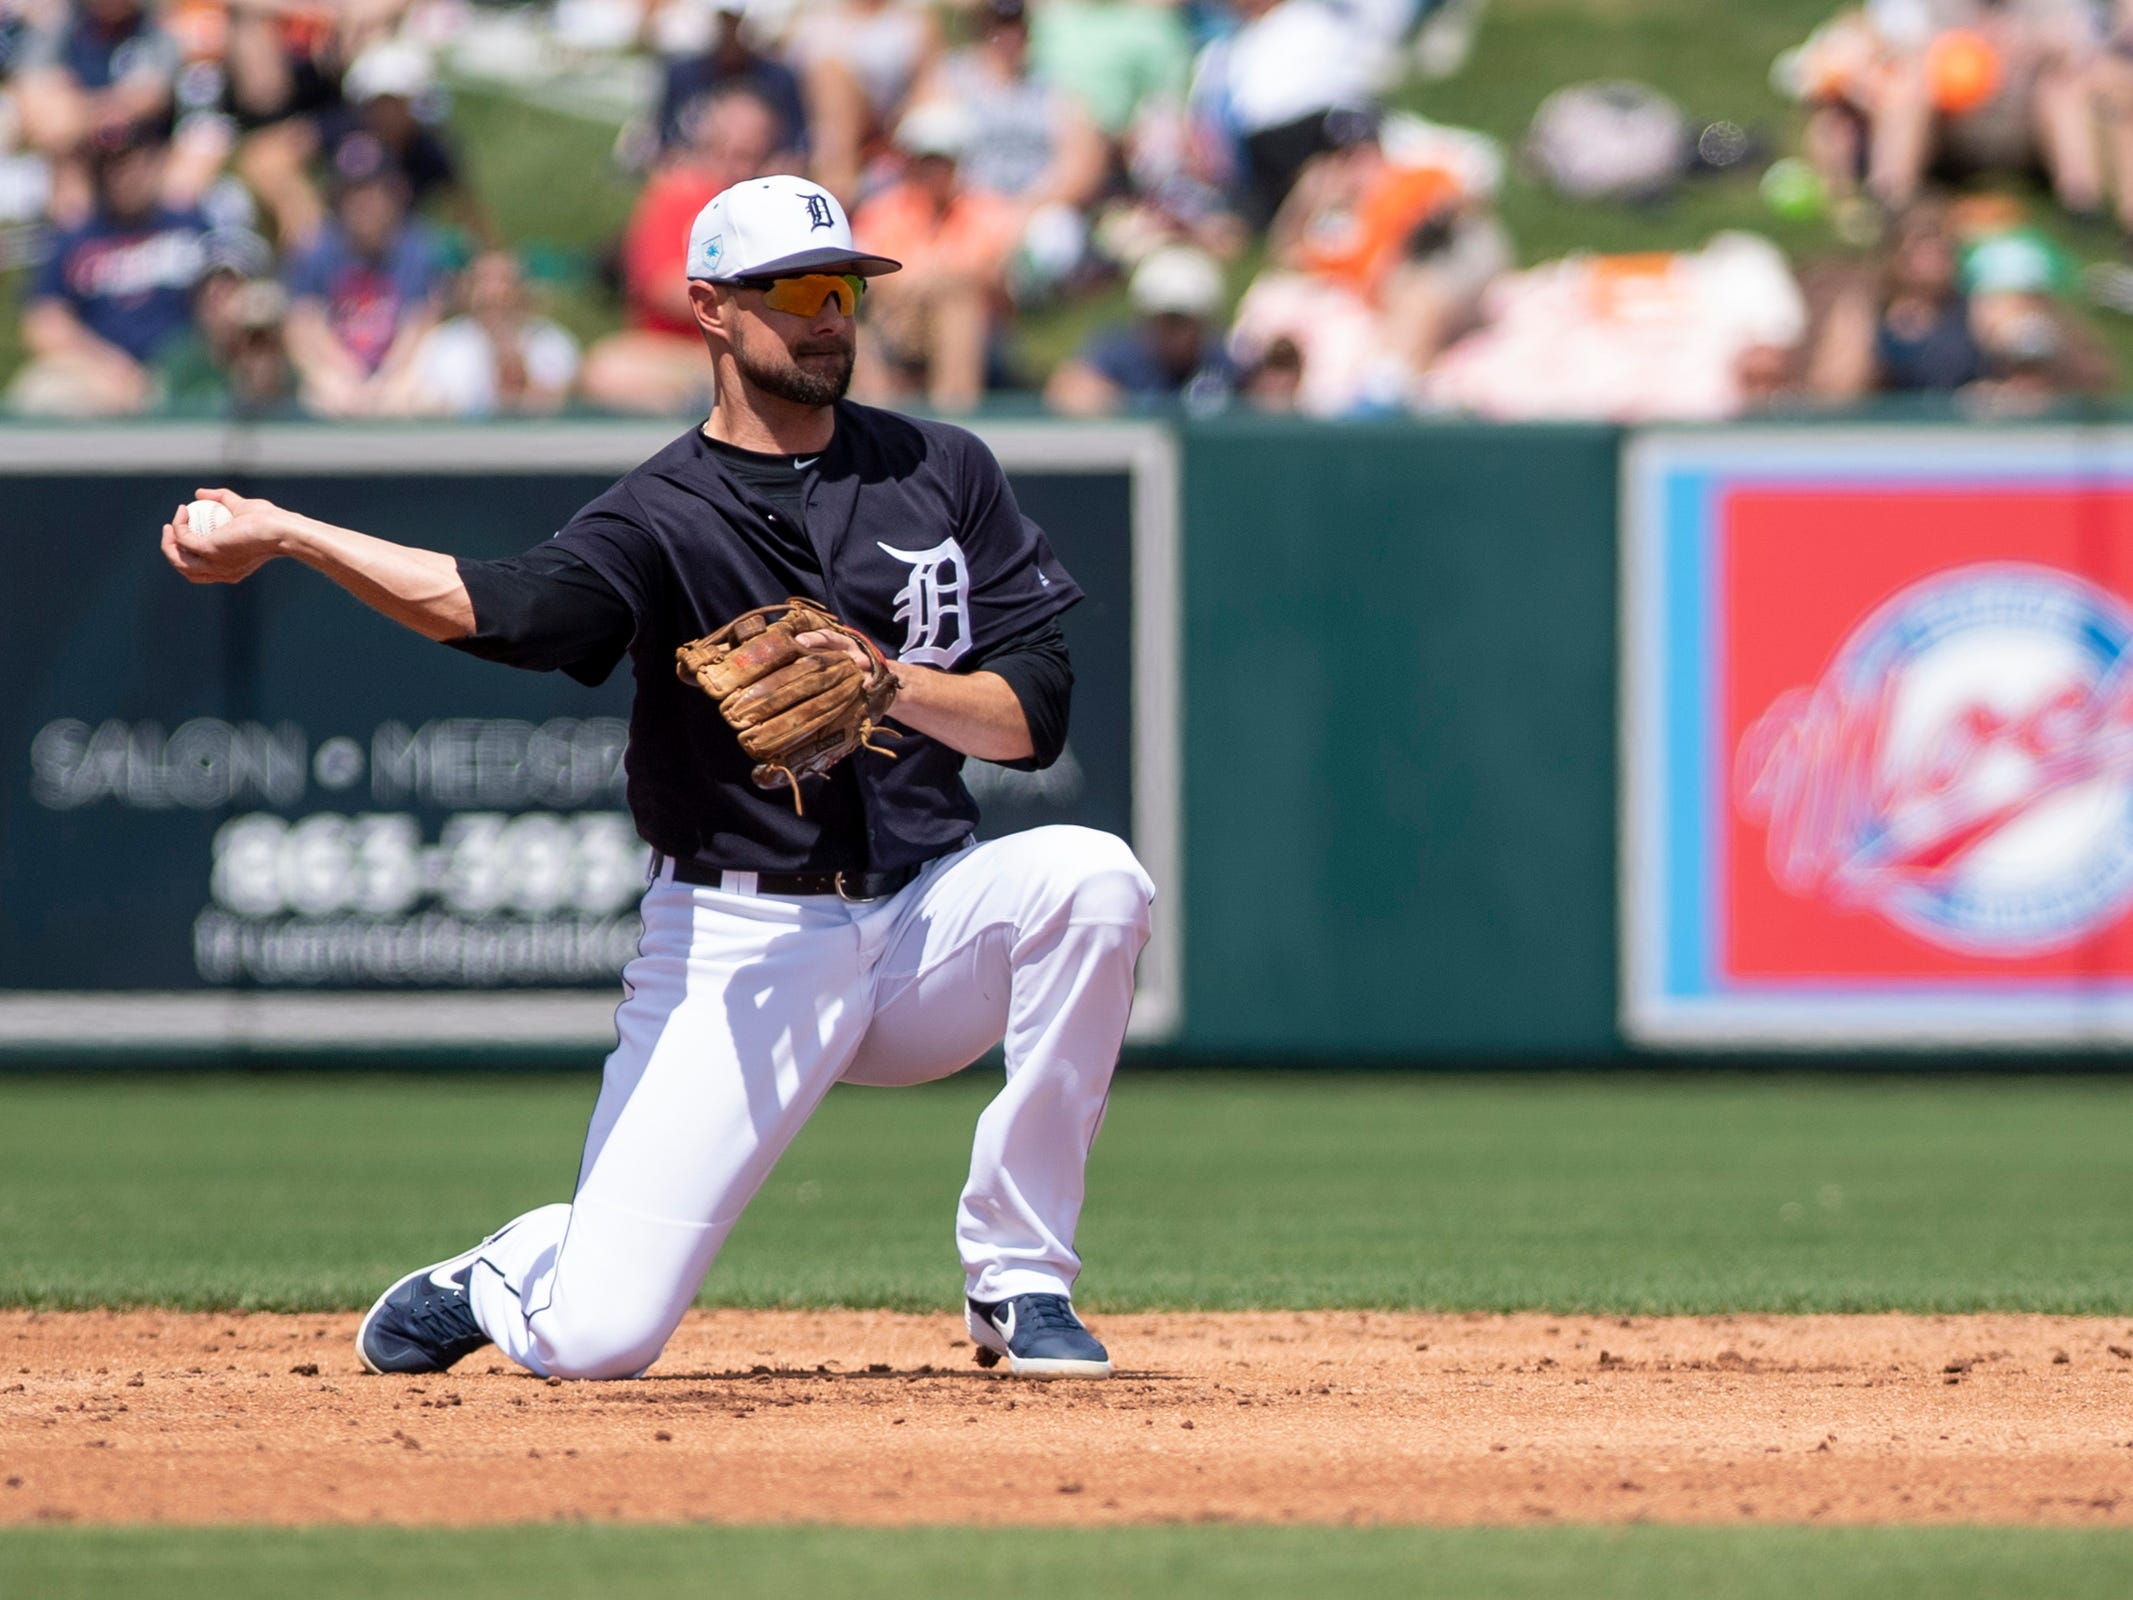 Detroit Tigers infielder Jordy Mercer fields during the third inning against the Boston Red Sox at Joker Marchant Stadium in Lakeland, Fla. on March 14, 2019.